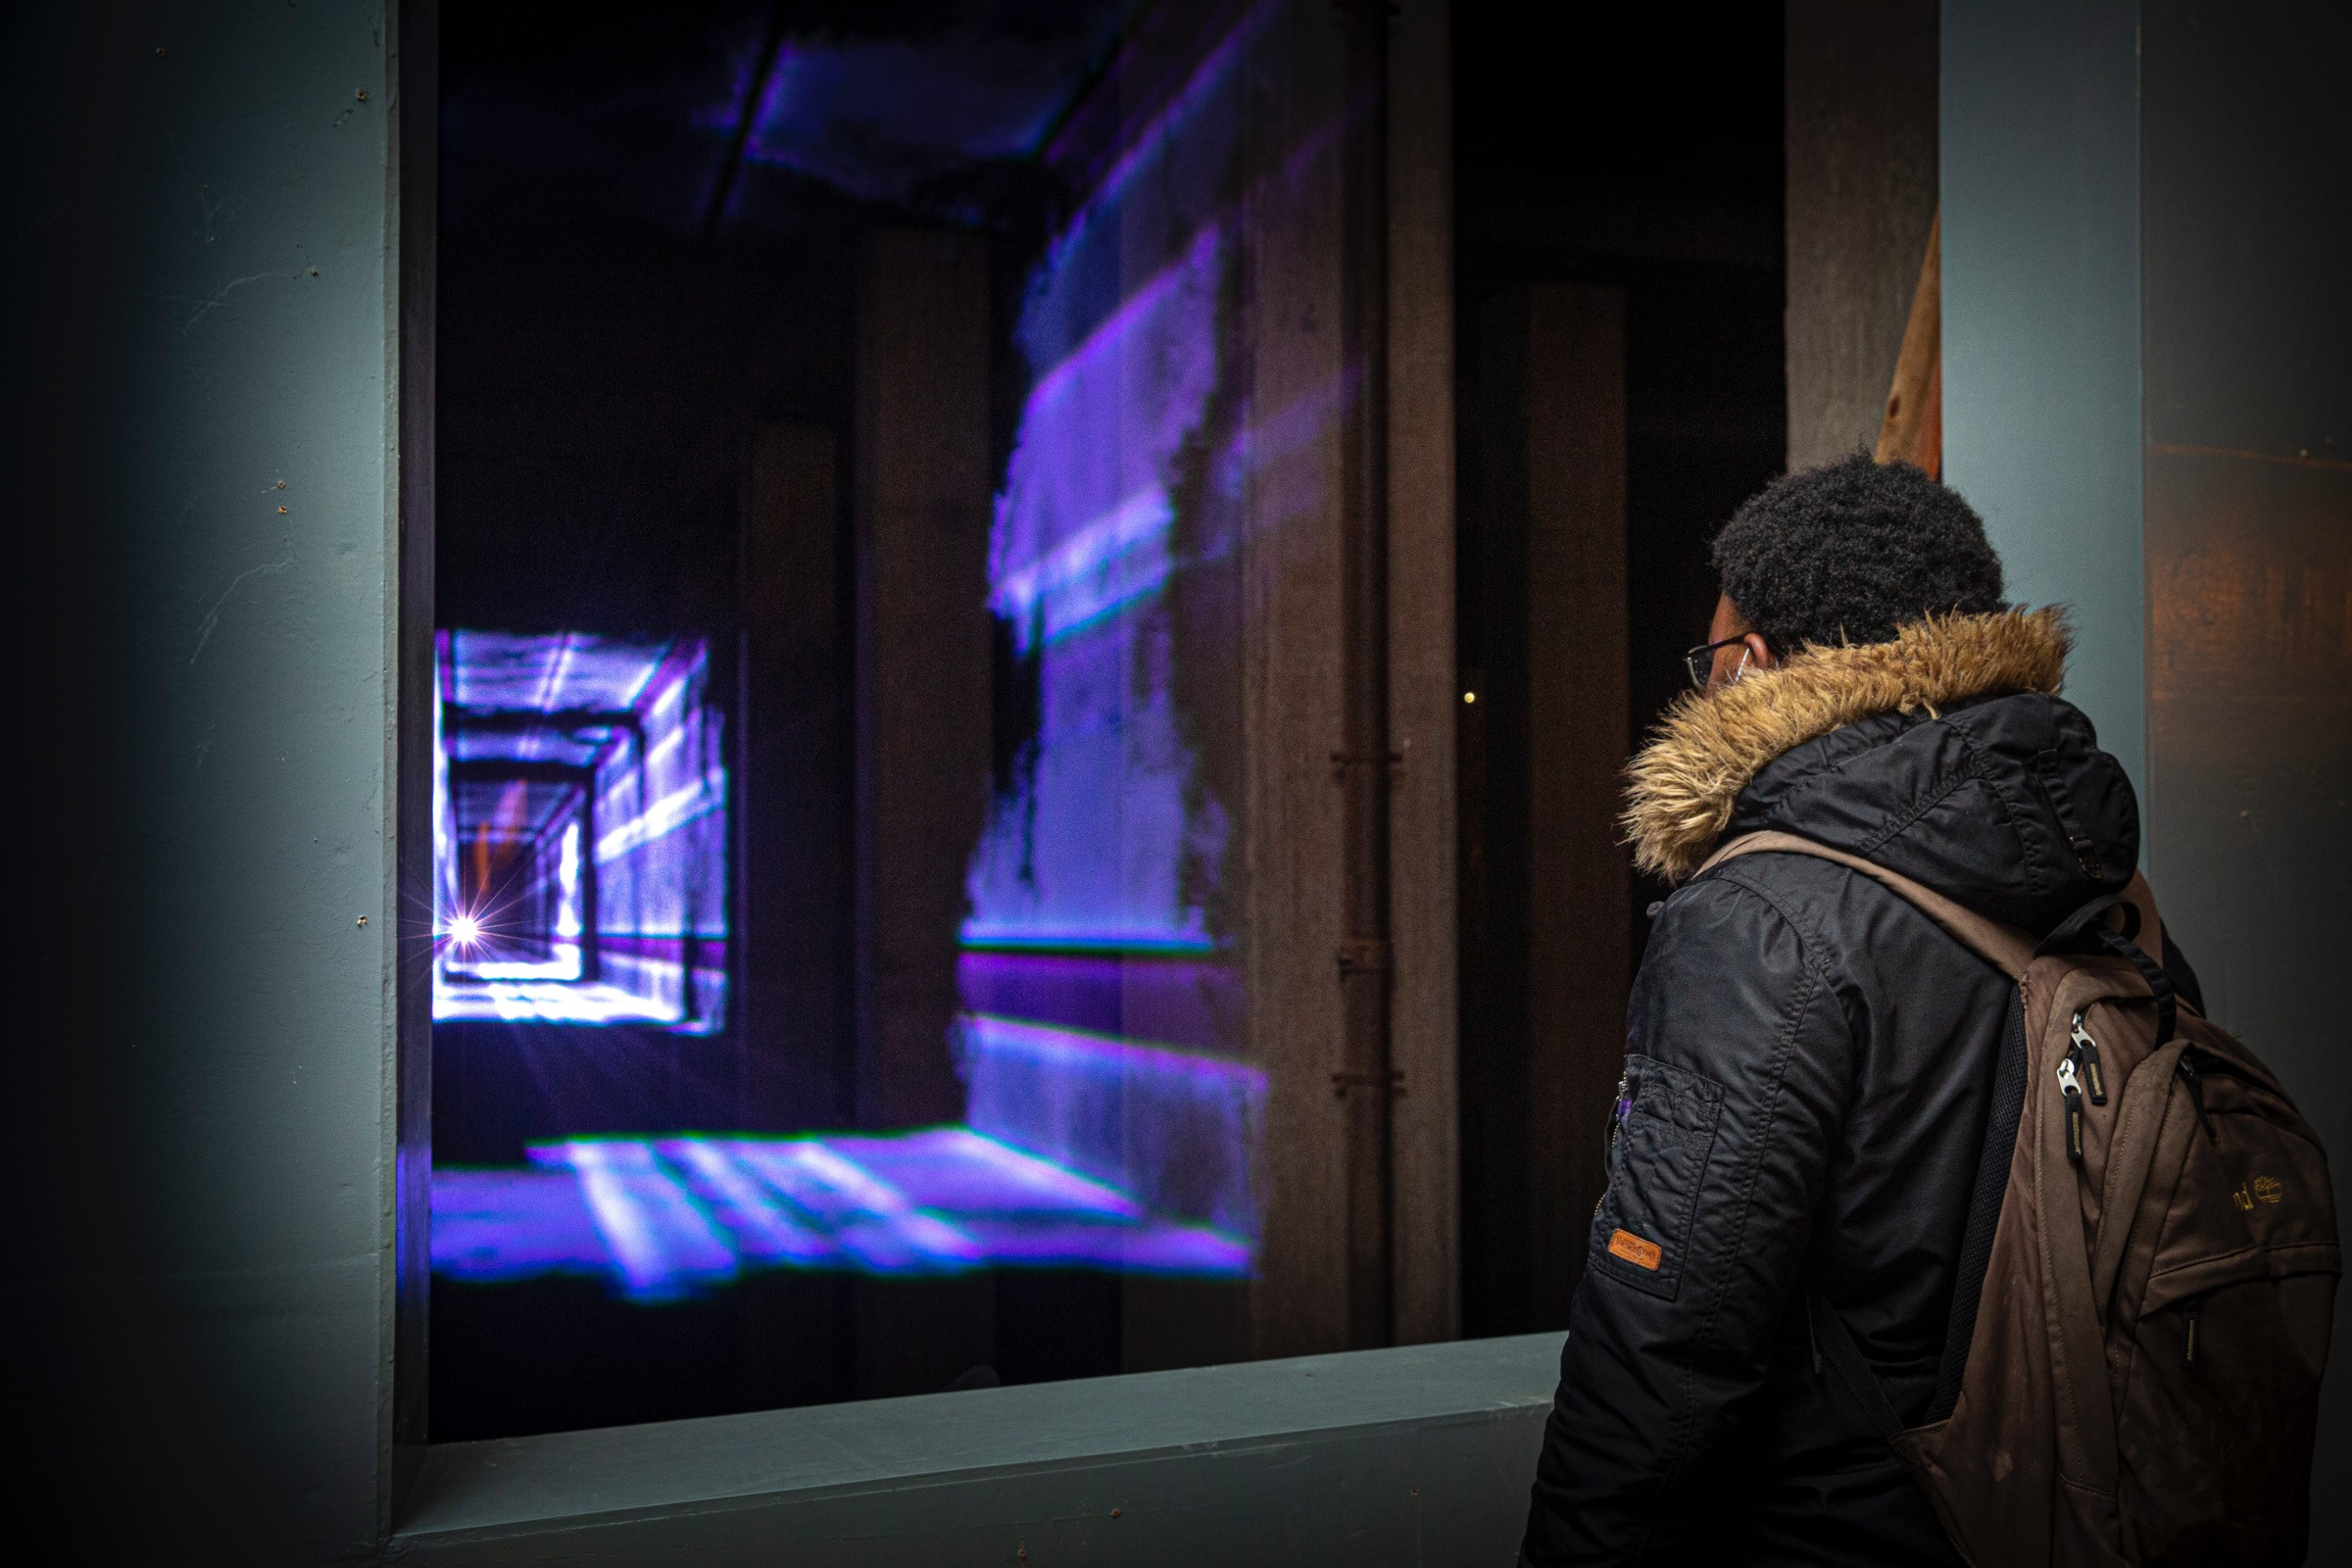 A young man watching Presence by Marcus Lyall